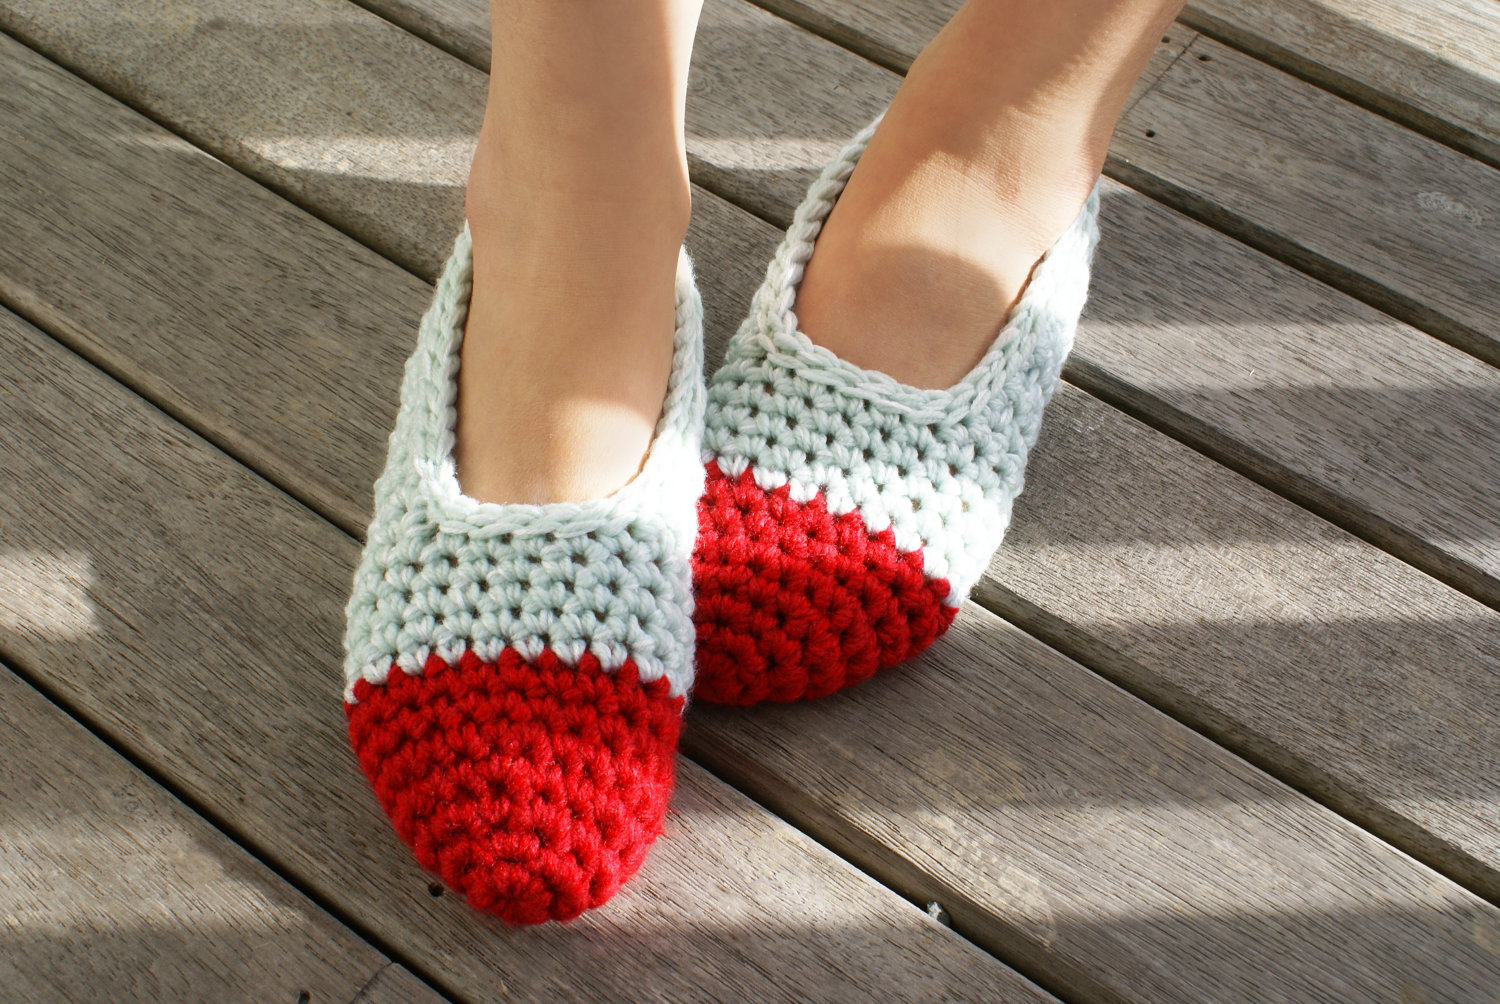 a1ed44c9d0e20 Women's Crochet Slippers, House Shoes In Red & Baby Blue, Slippers Socks,  Ballet Shoes, Flats